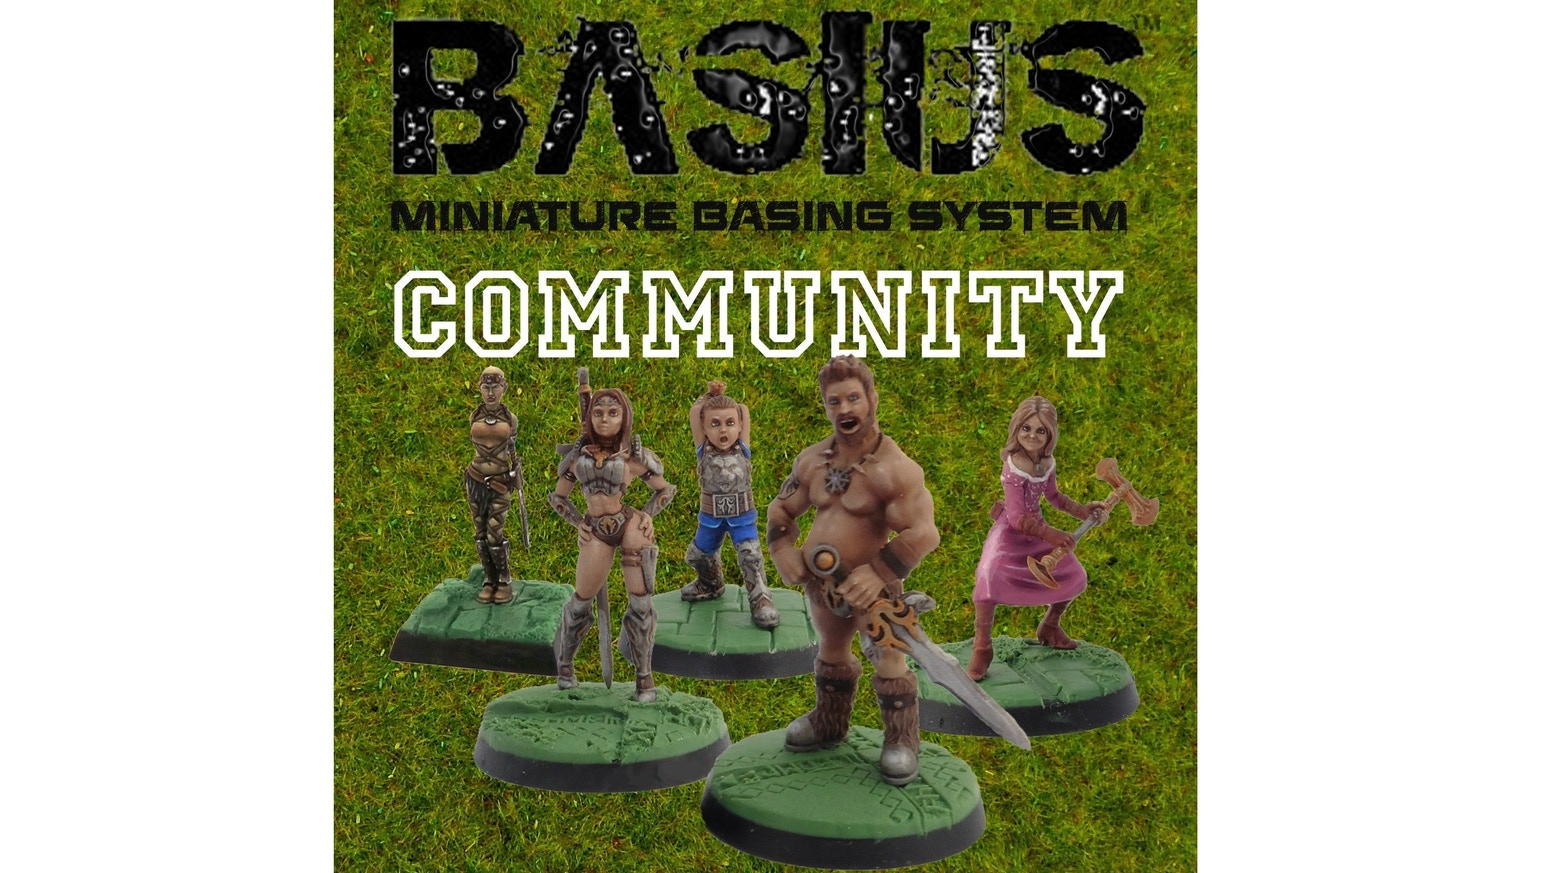 Kickstarter's most detailed Miniature Basing & Sculpting System returns - and this time its all about the tabletop wargames COMMUNITY